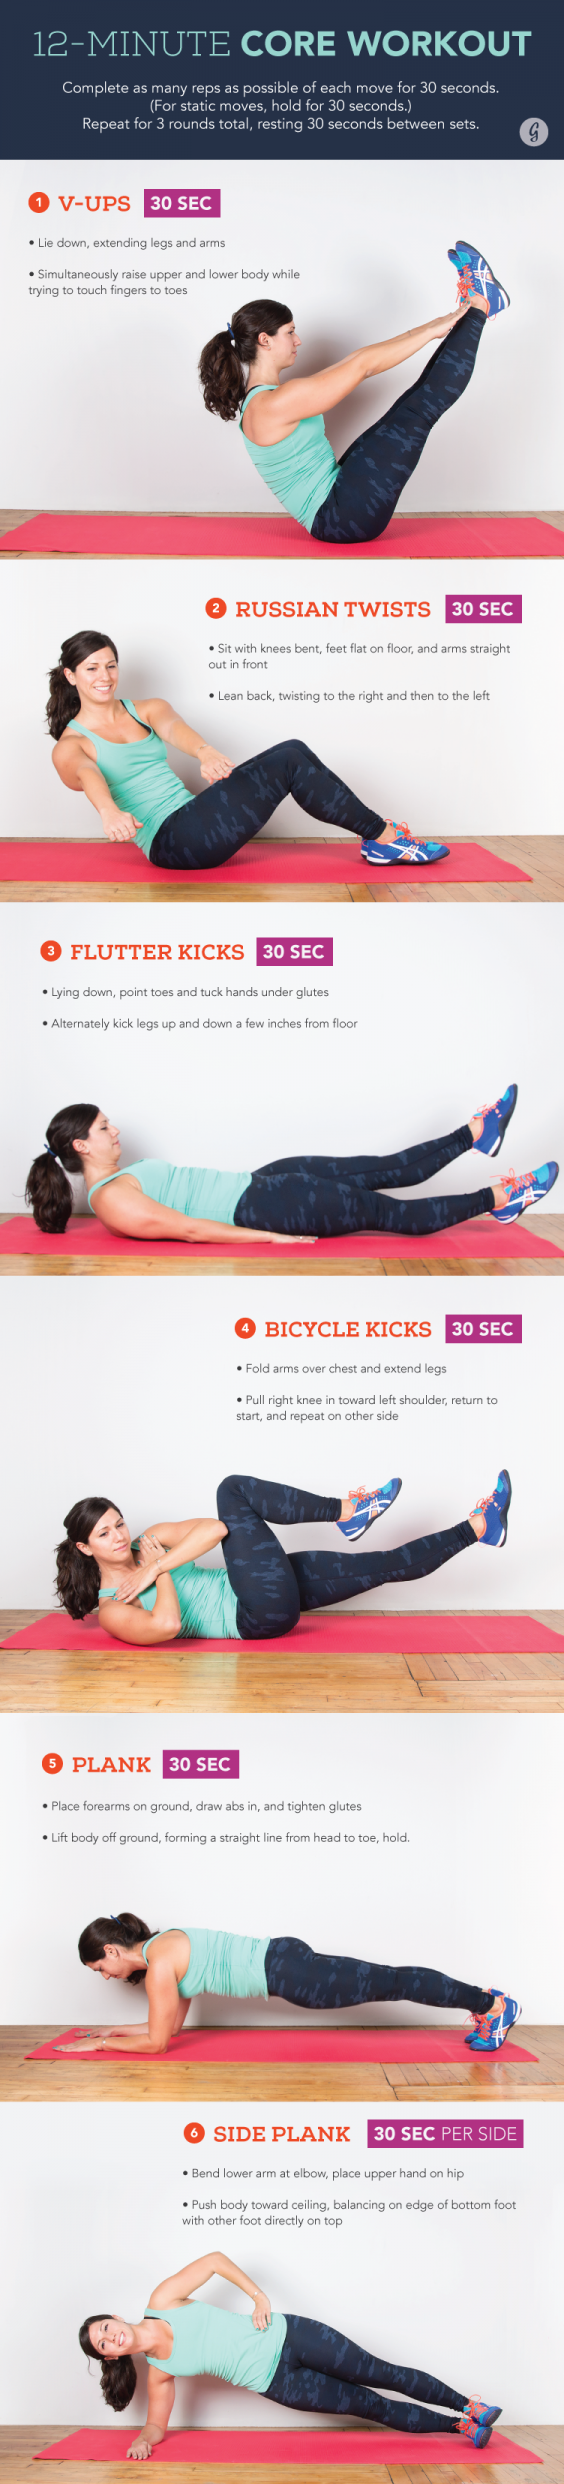 Are Crunches The Best Workout? Here Are The Absolute Most